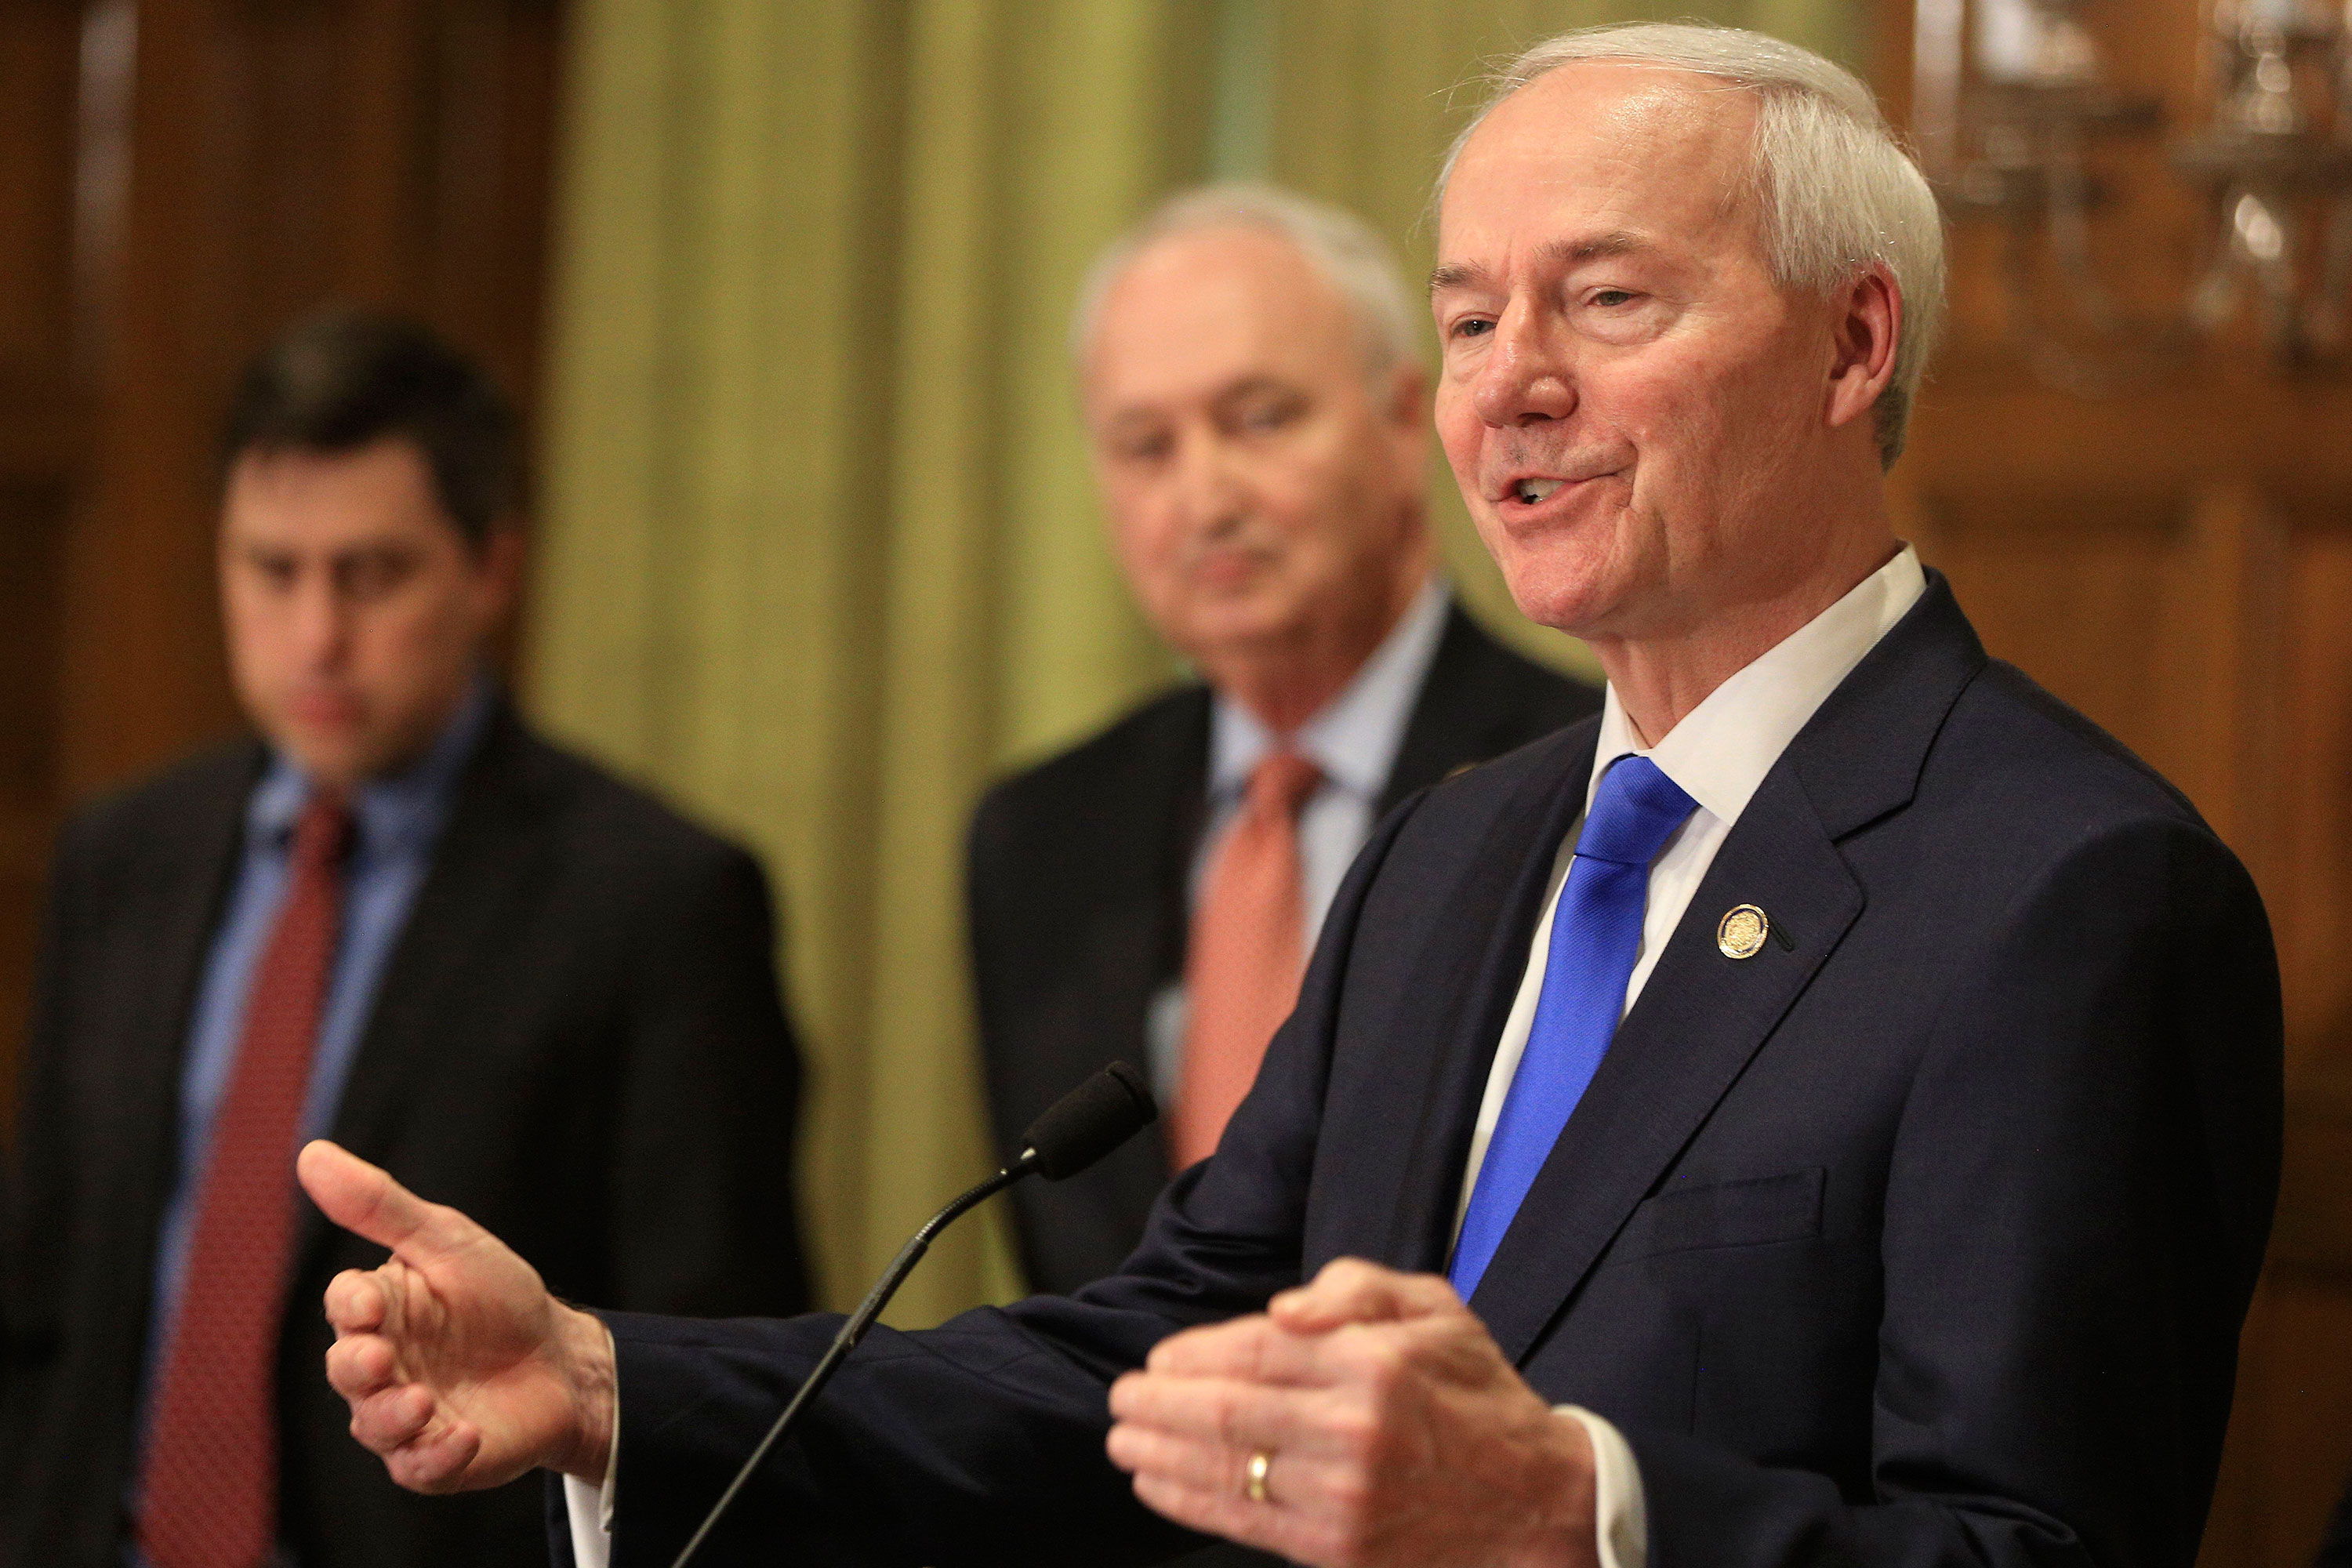 Gov. Asa Hutchinson speaks at a press conference on March 23 in Little Rock, Arkansas.